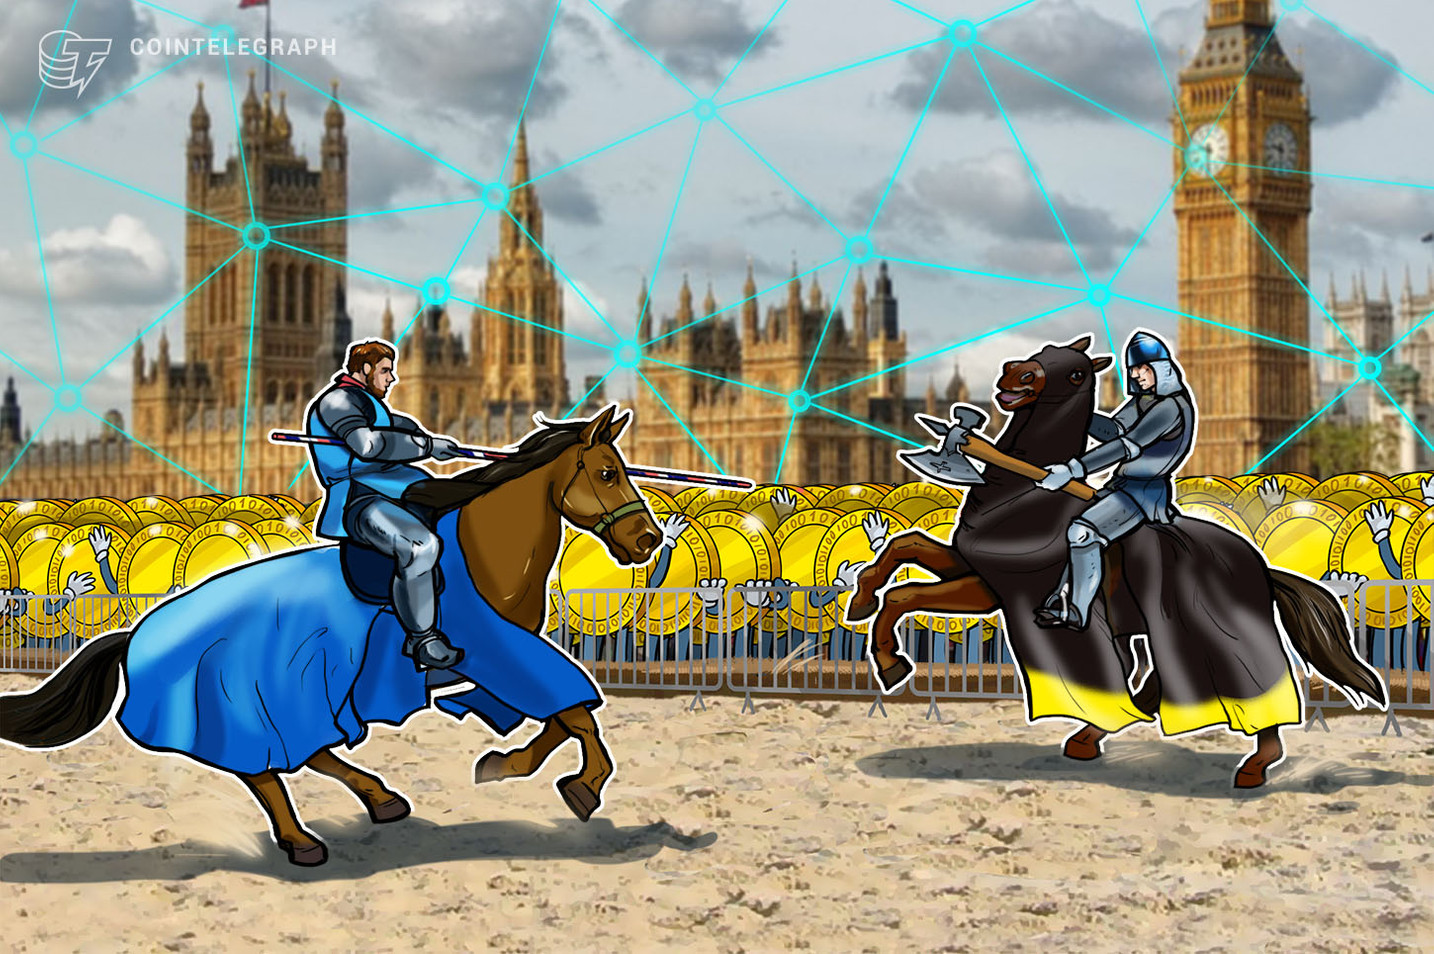 UK Law Commission to Review Legal Frameworks to Remain 'Competitive' in Era of Smart Contracts